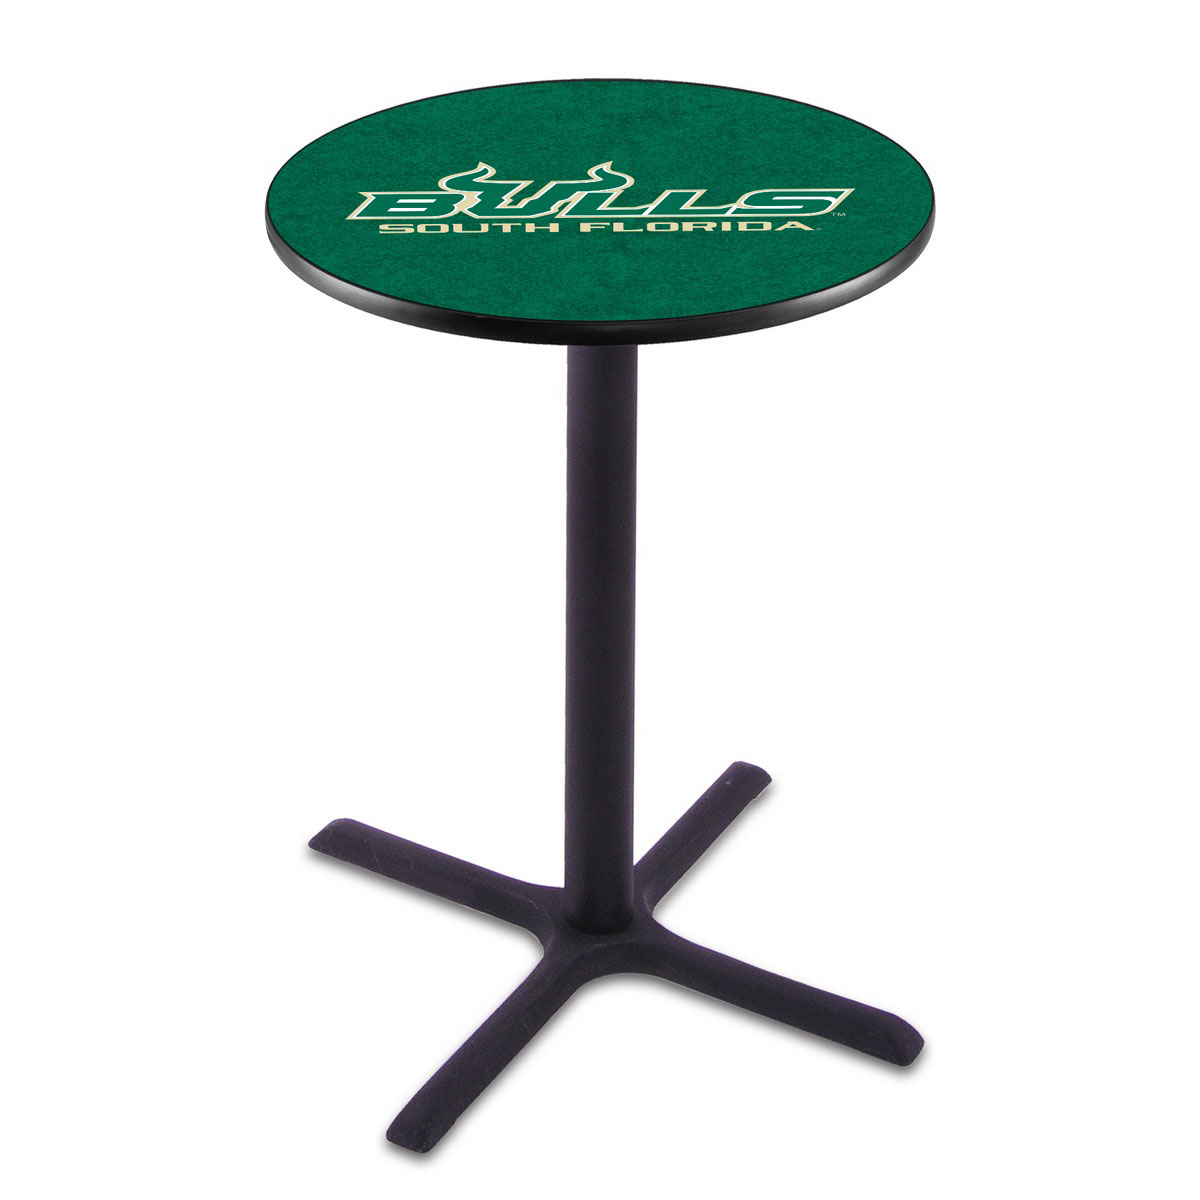 Best-selling South Florida Wrinkle Pub Table Product Photo